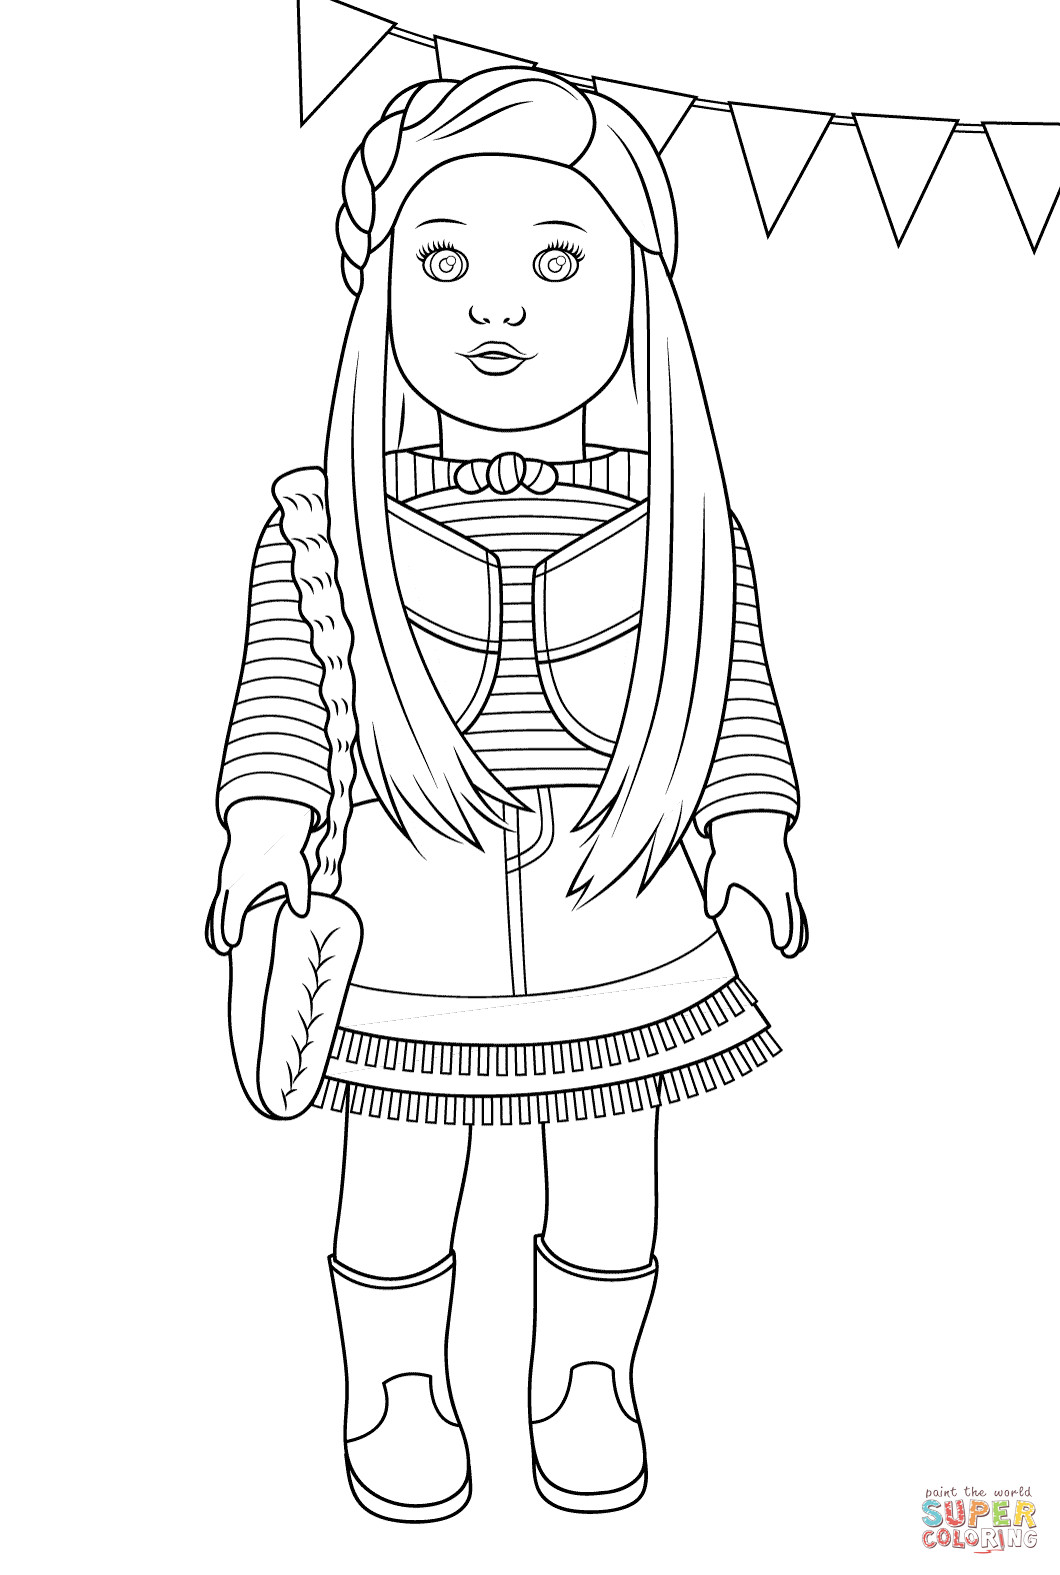 American Girl Doll Coloring Pages  American Girl Mckenna coloring page